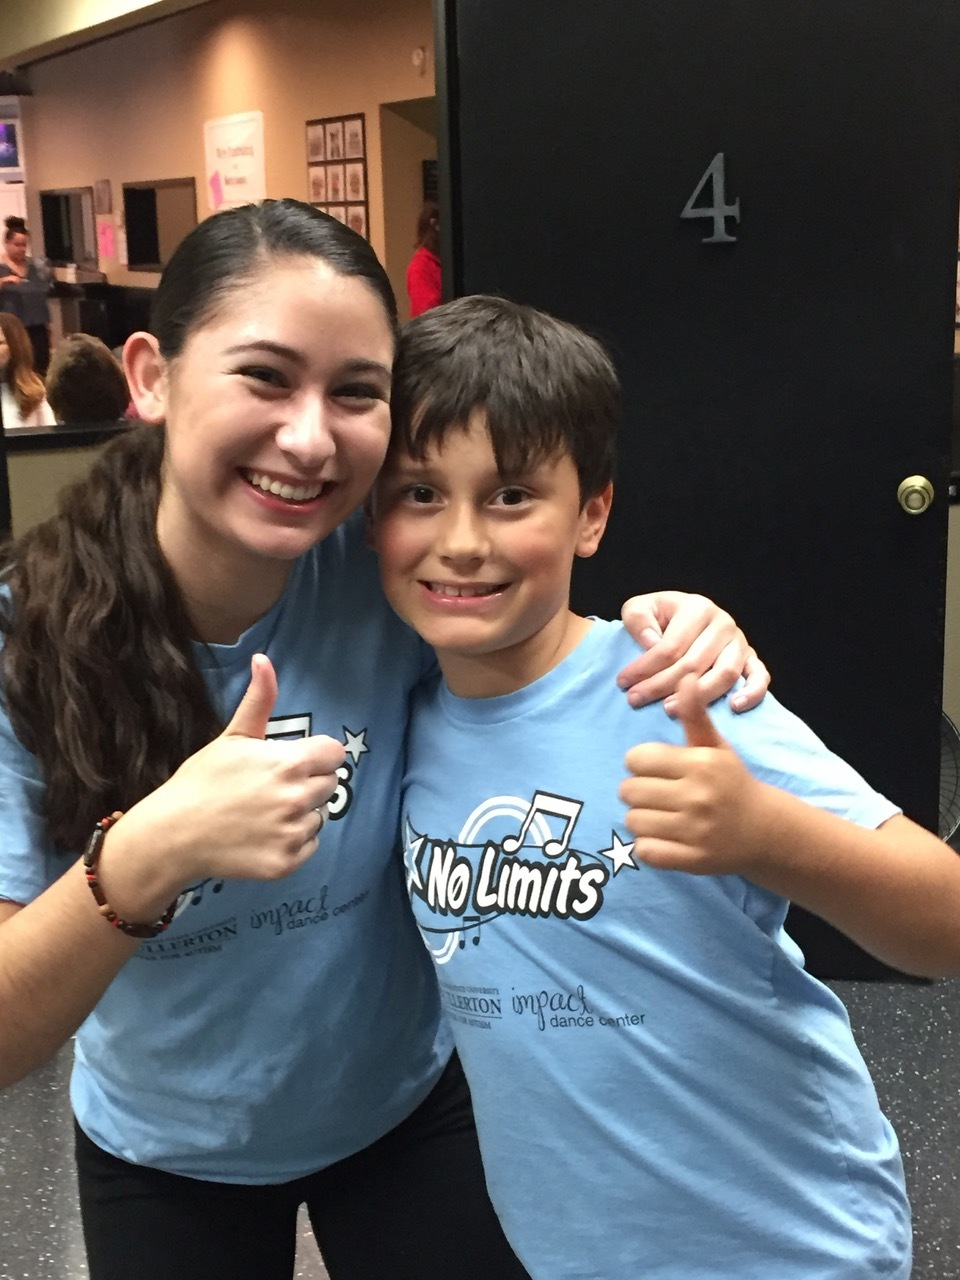 Community & After School Programs - No Limits participates in as many community events as possible. We strive to be great ambassadors to our community and thrive on integration of all abilities.